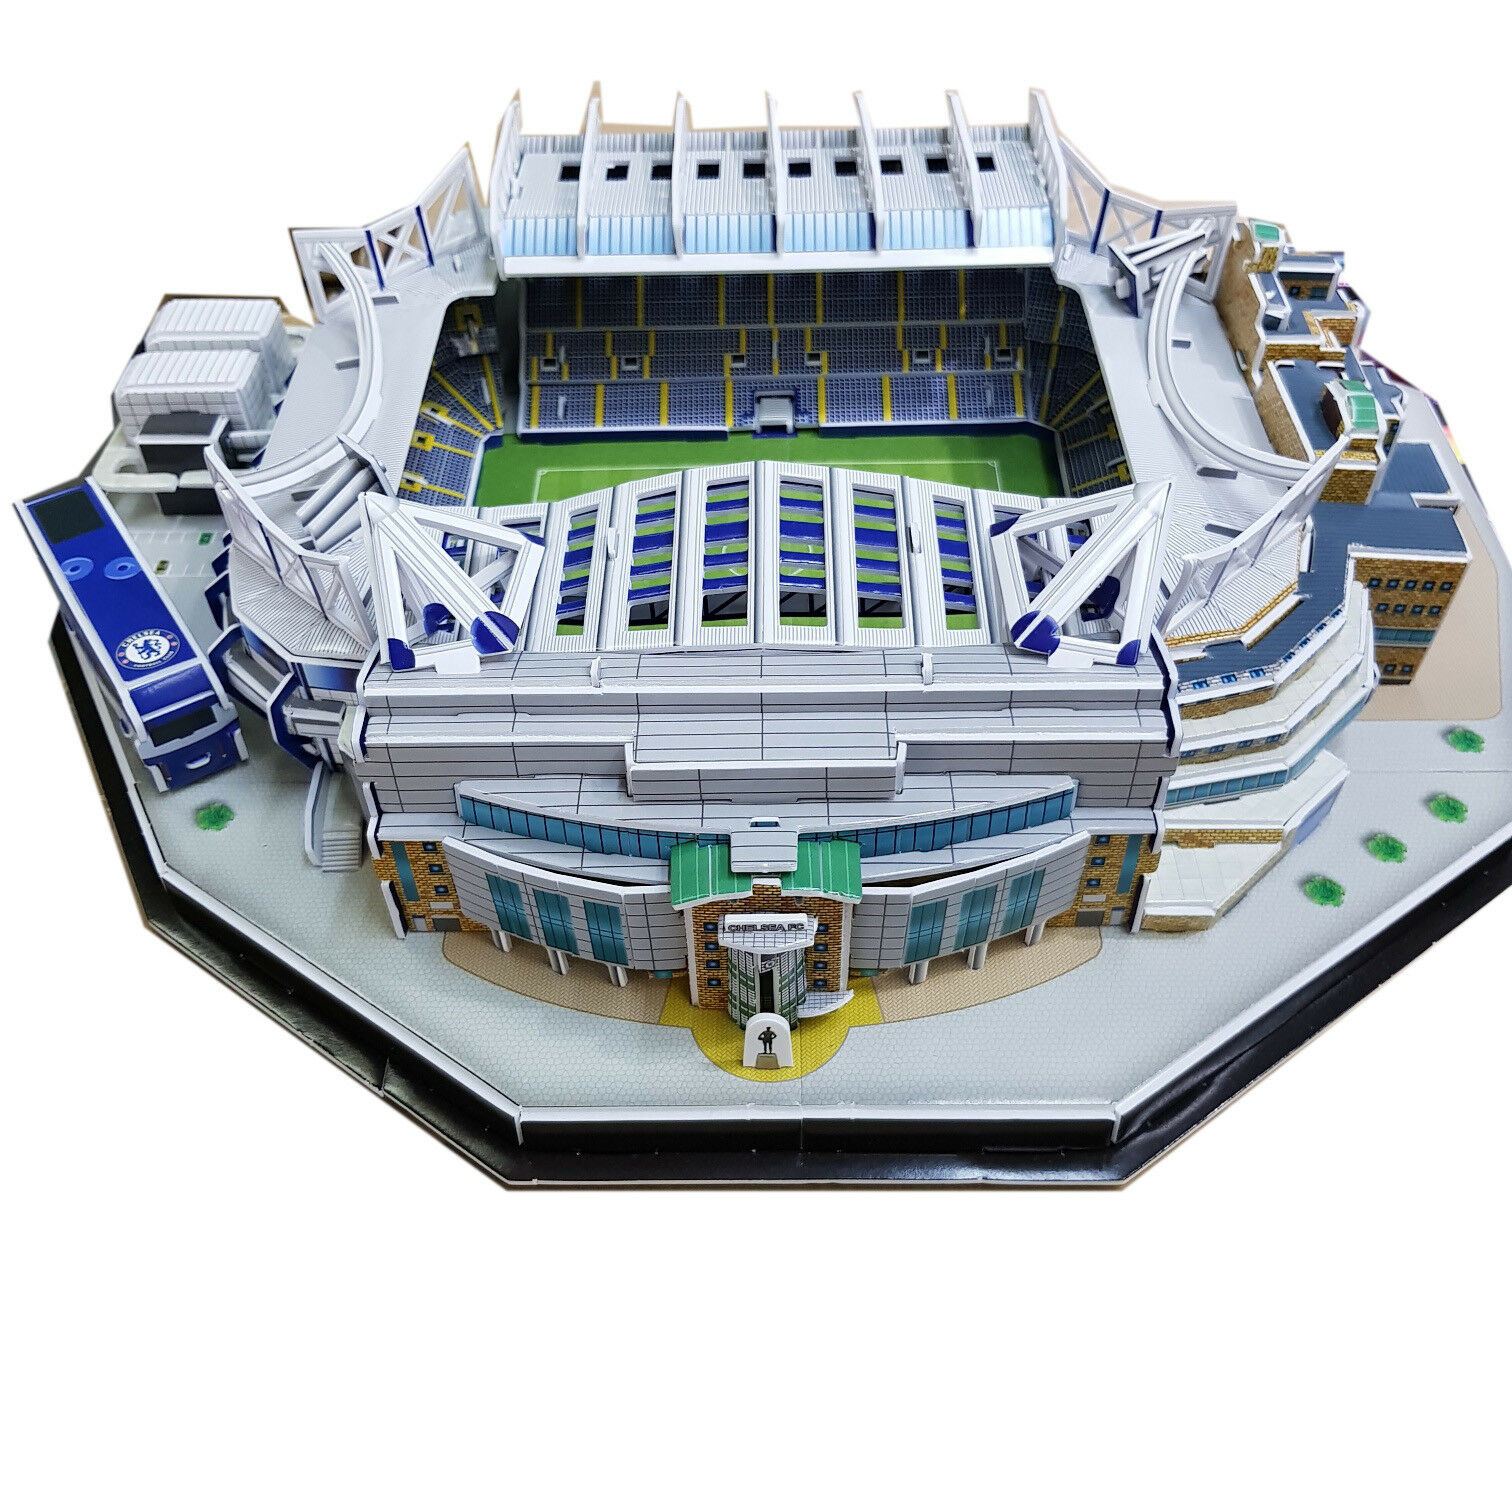 3d chelsea fc replica stamford bridge football stadium puzzle 171 pieces gifts ebay details about 3d chelsea fc replica stamford bridge football stadium puzzle 171 pieces gifts